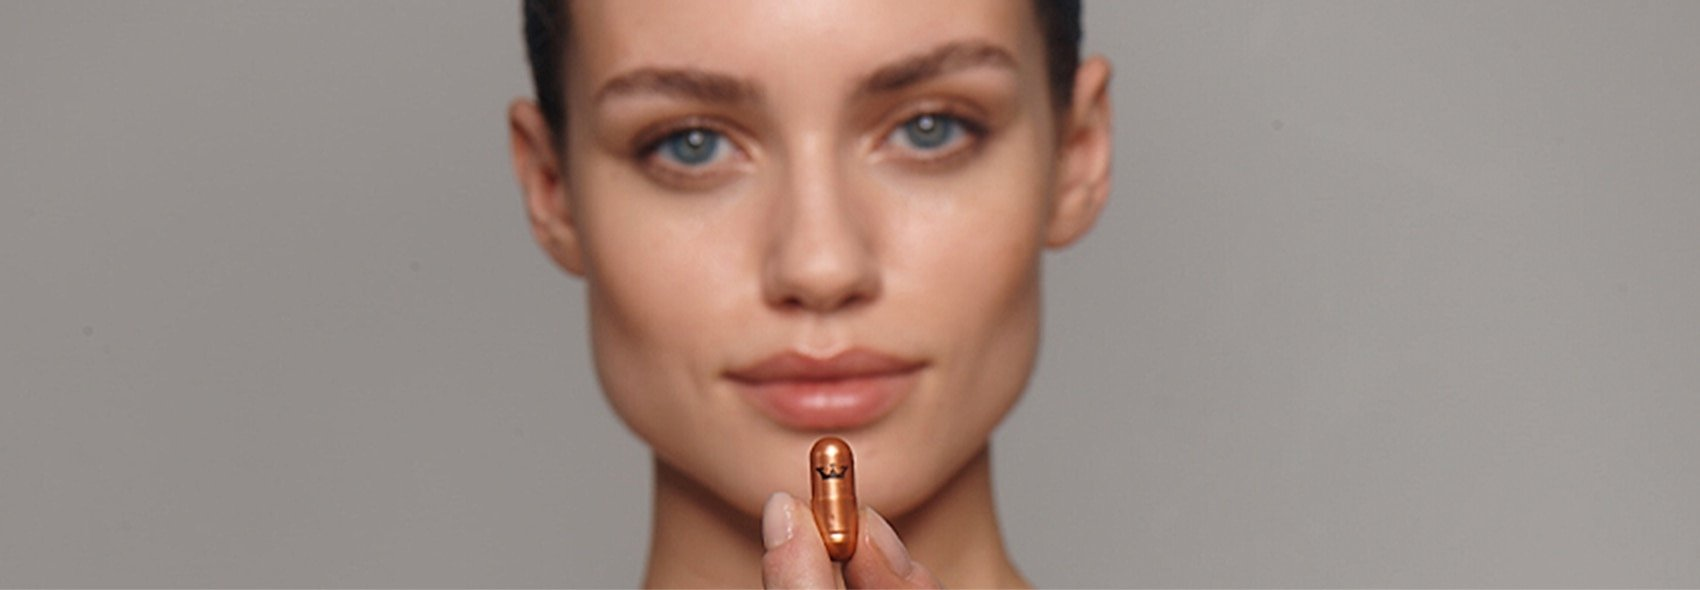 woman with vitamin pill next to chin